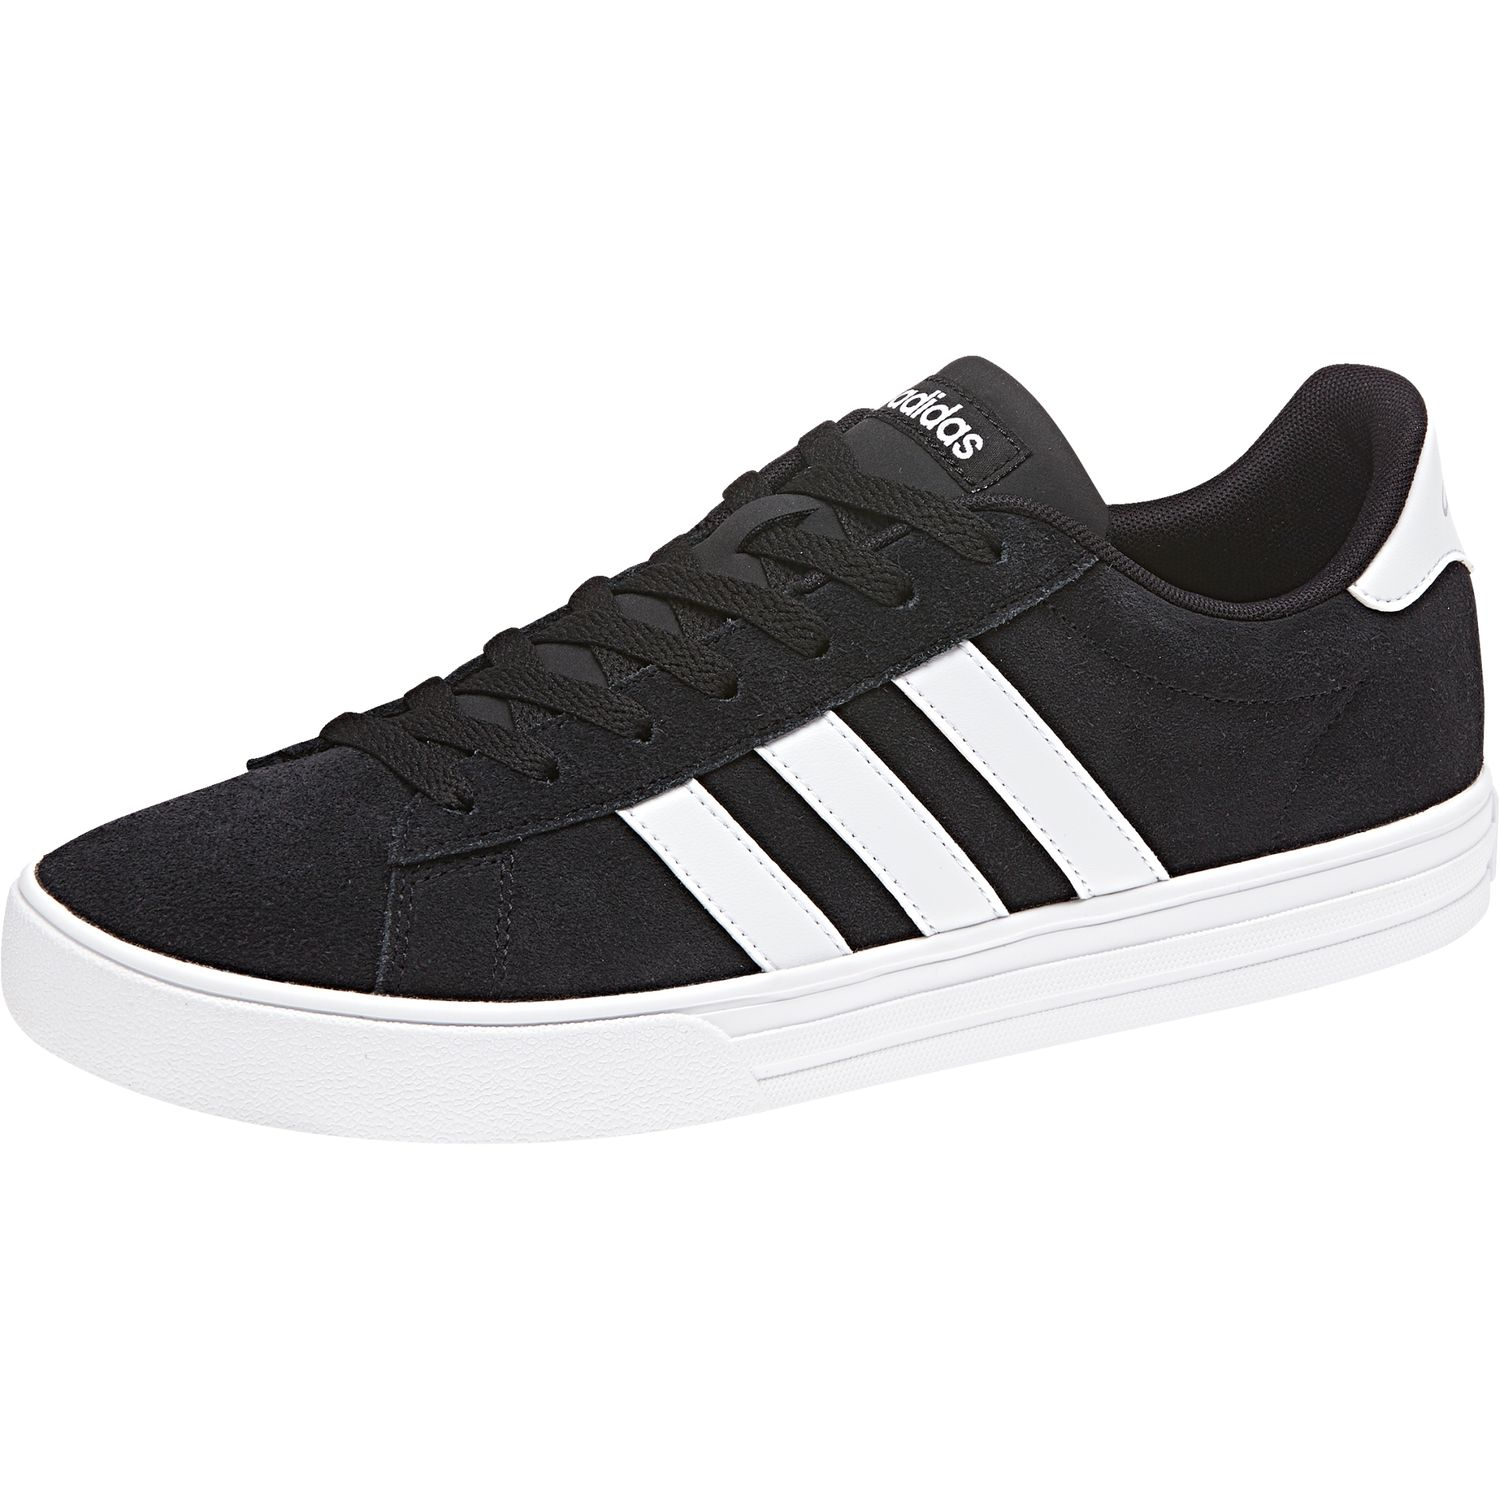 pretty nice dce24 a7ed3 adidas mens DAILY 2.0 sneaker shoes DB0273 black